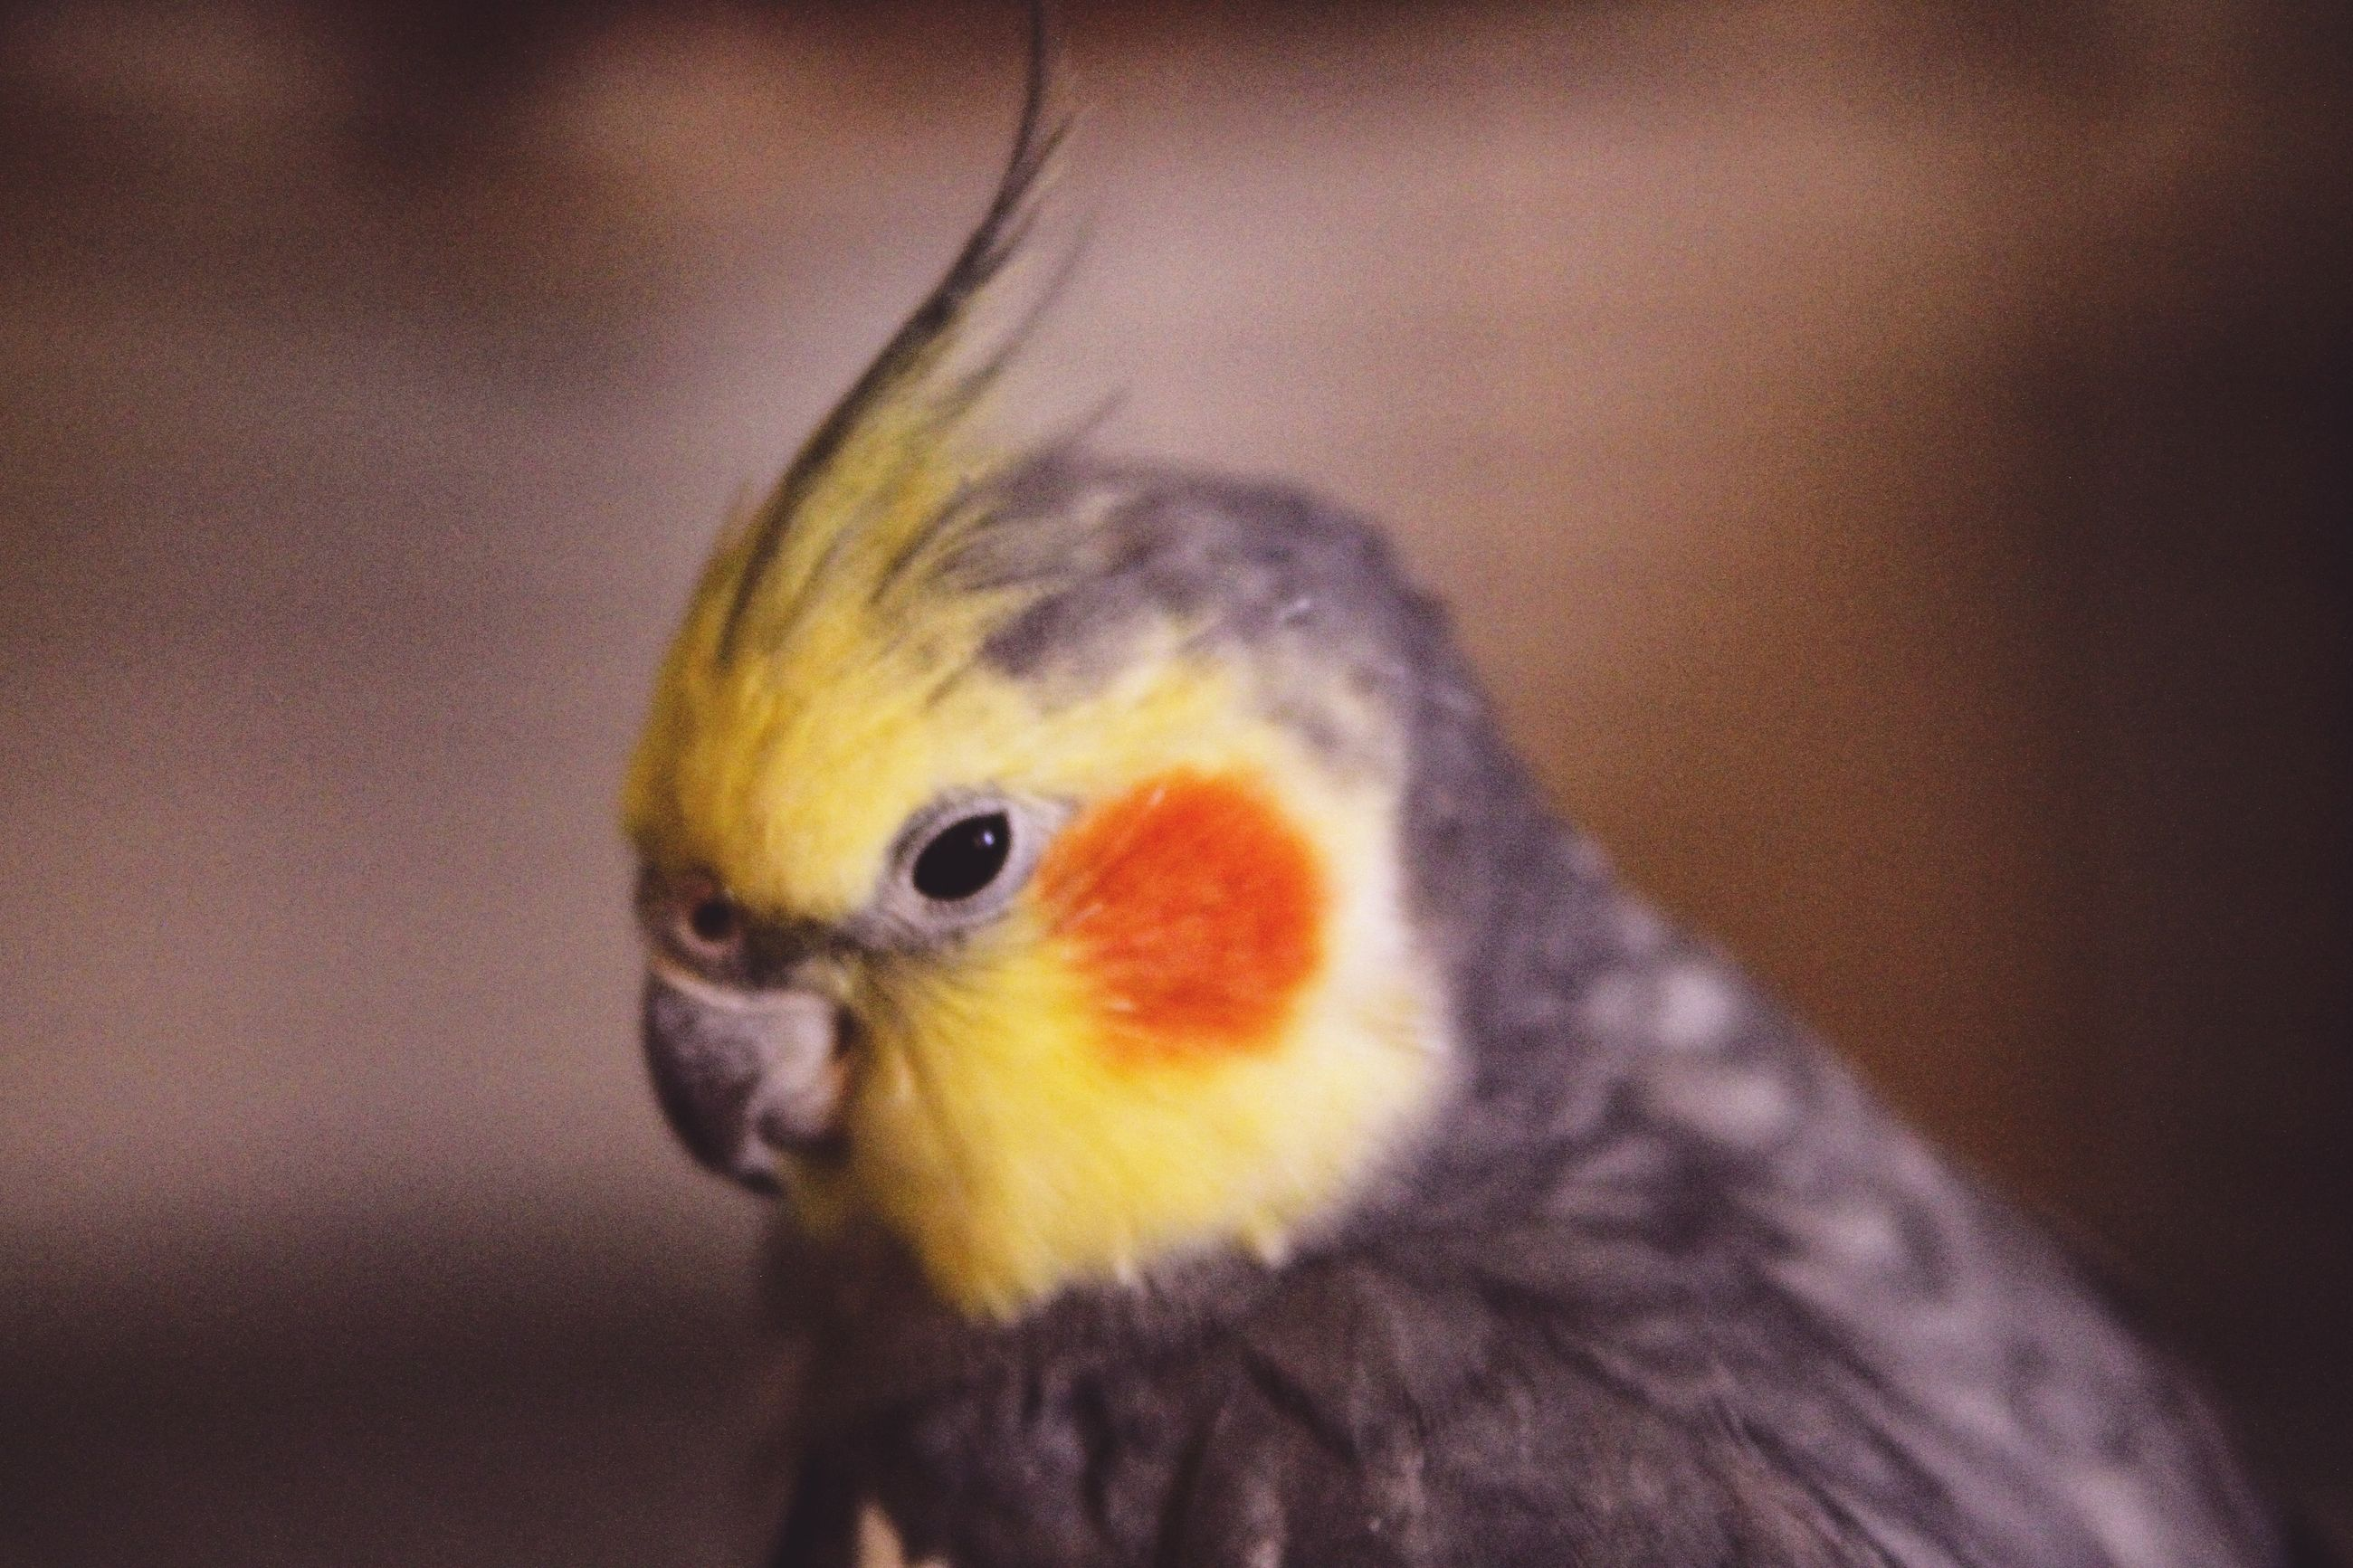 animal themes, animal, one animal, bird, vertebrate, close-up, focus on foreground, animals in the wild, animal wildlife, no people, beak, selective focus, yellow, indoors, parrot, orange color, domestic, animal body part, pets, eye, animal head, animal eye